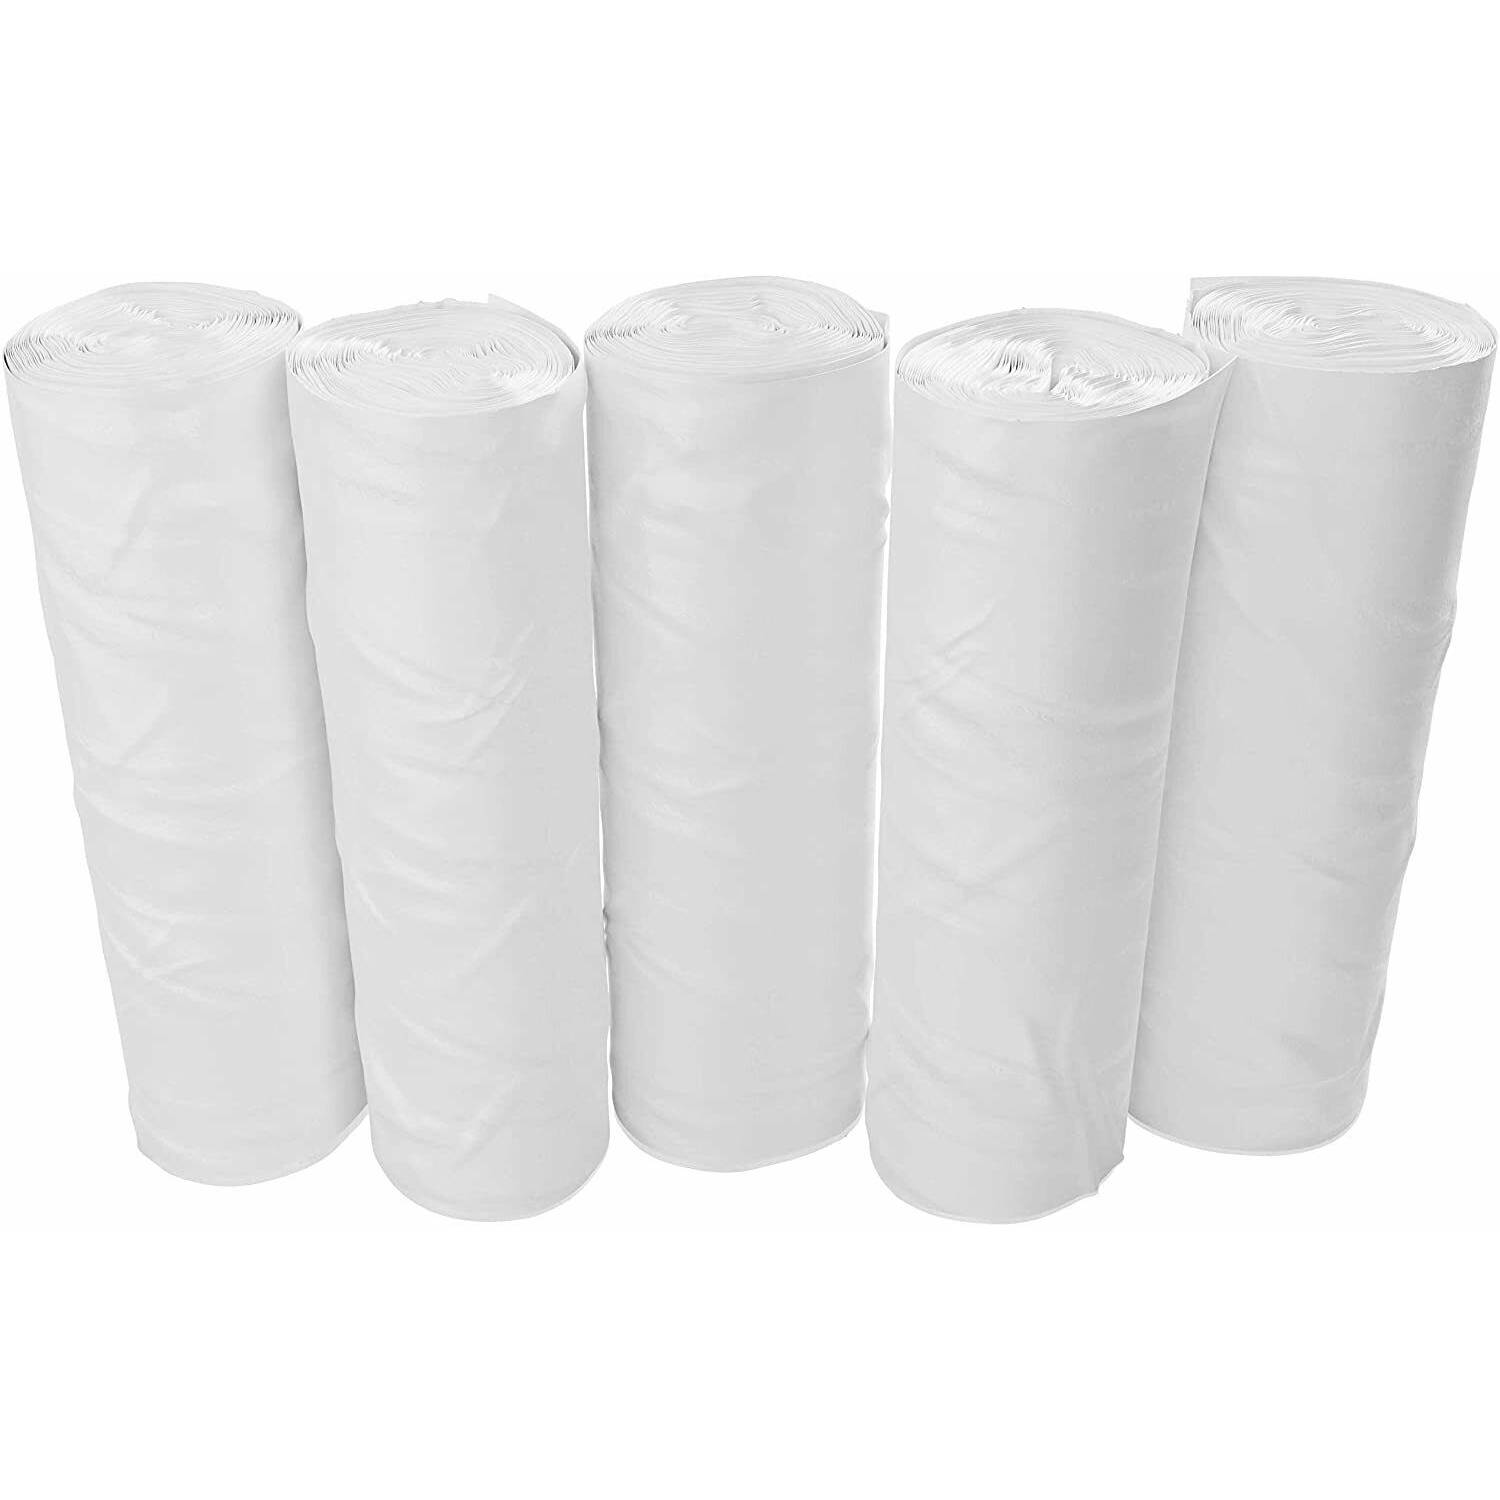 13 Gallon Trash Bags Clear Trash Bags 13 Gal, Recycling (250 Count)